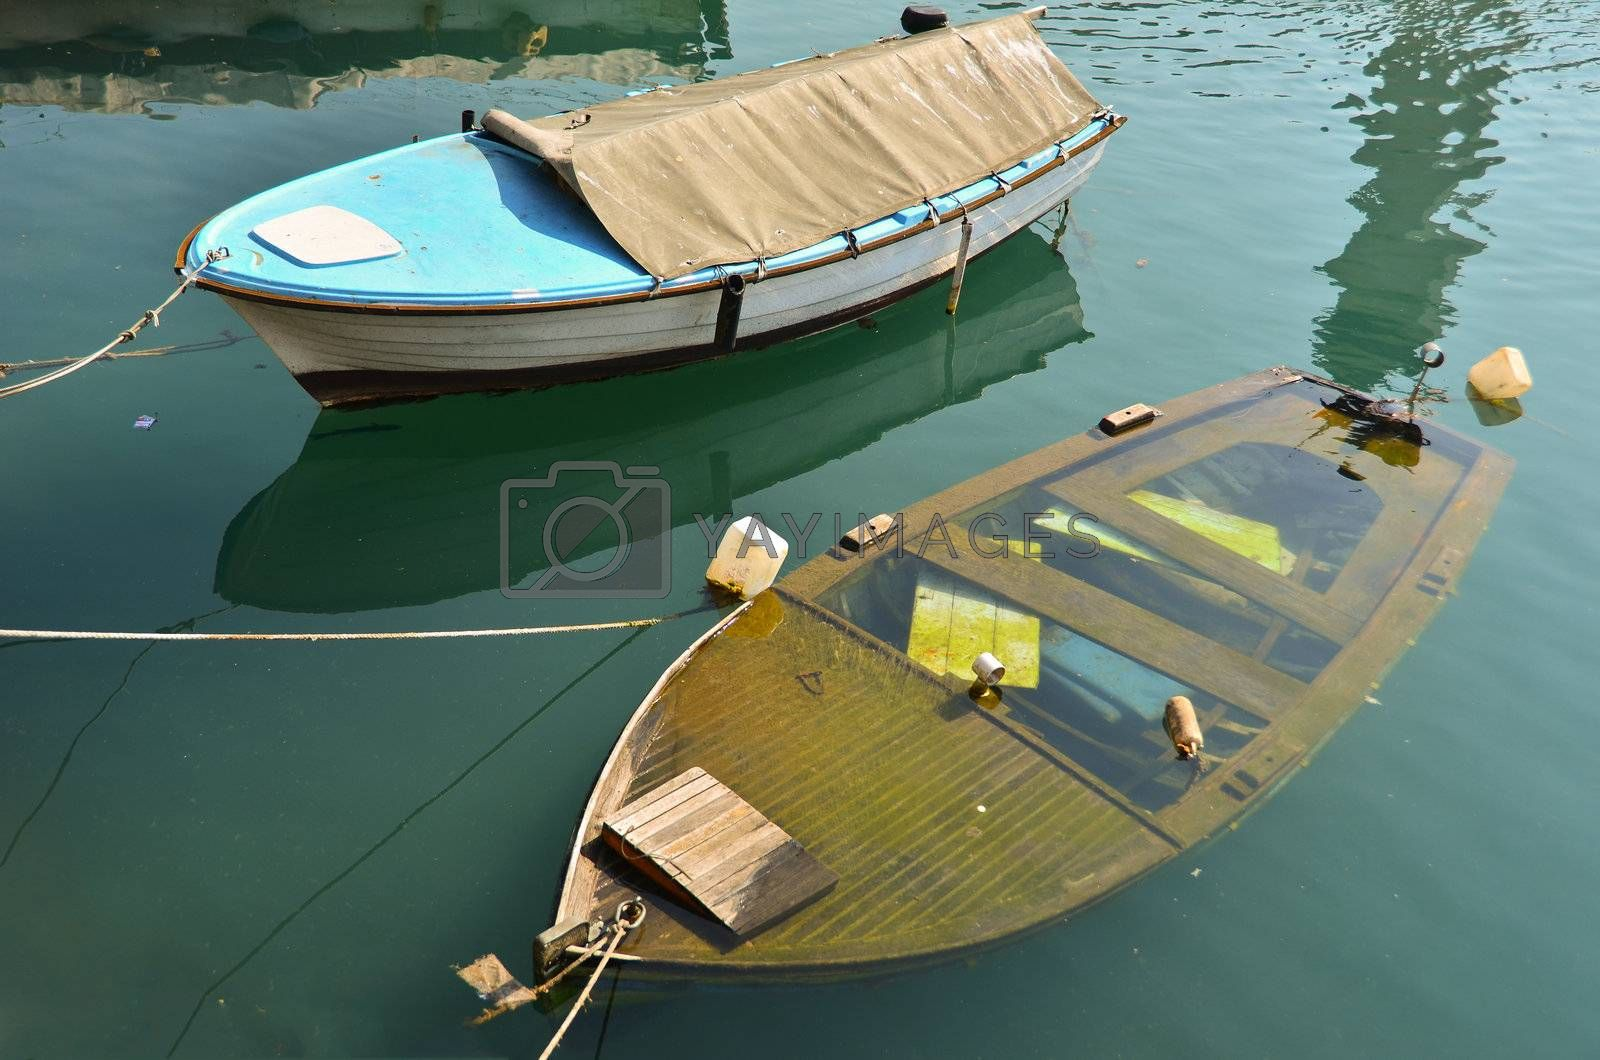 Two boats on berth, plastic blue one, and wooden one is sinking